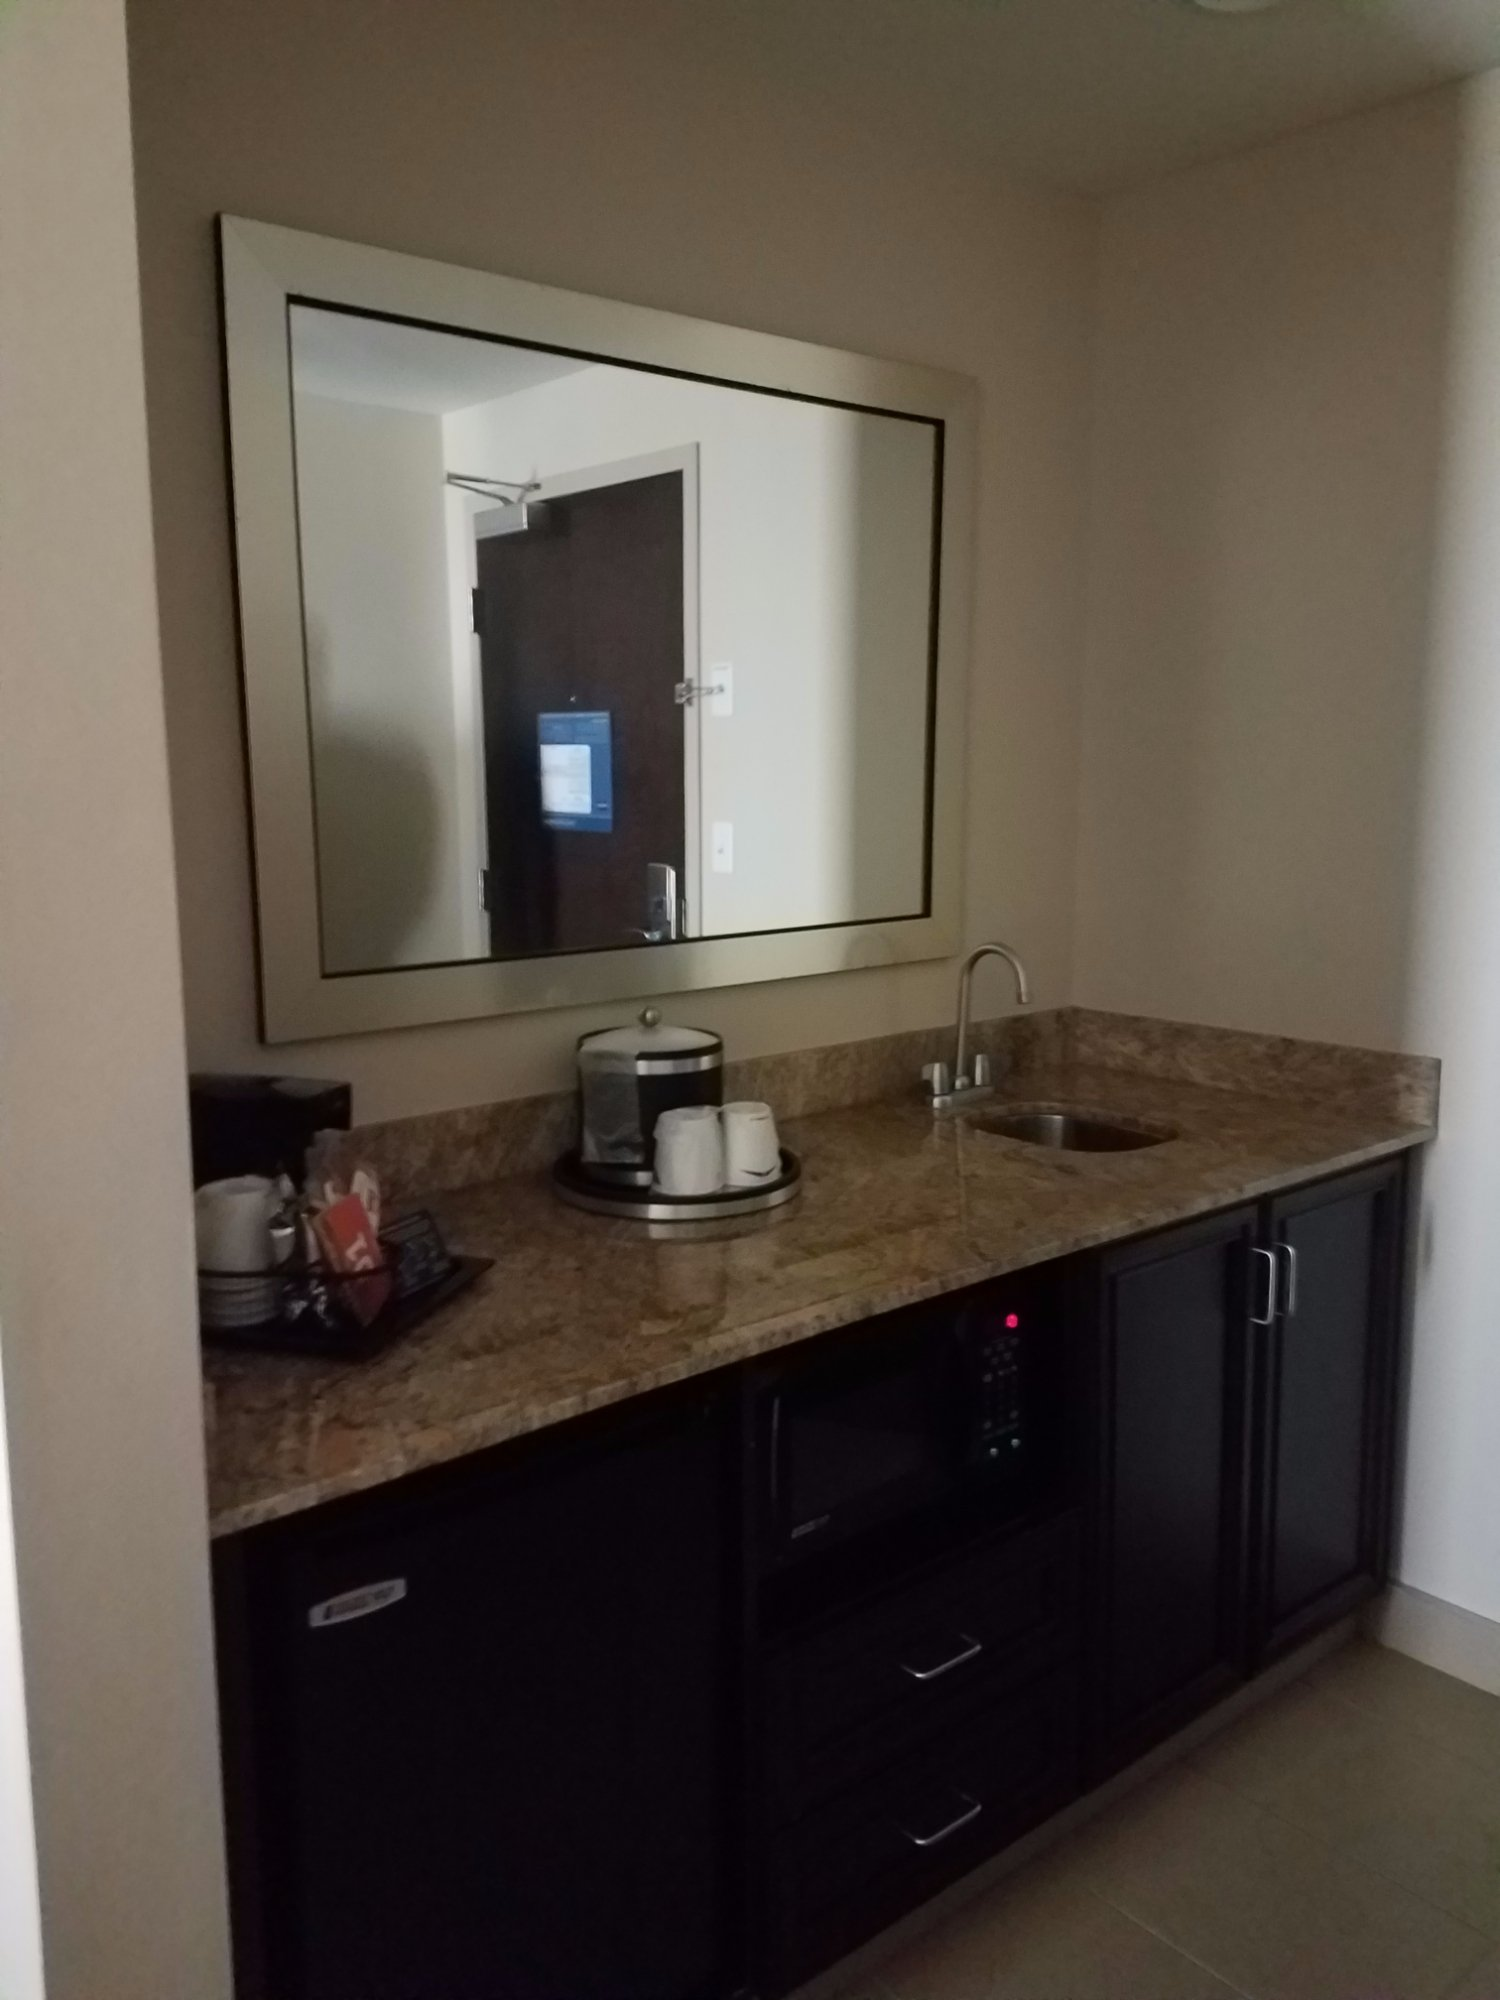 This is the coffee area with a refrigerator and sink that is right as you come in the room.